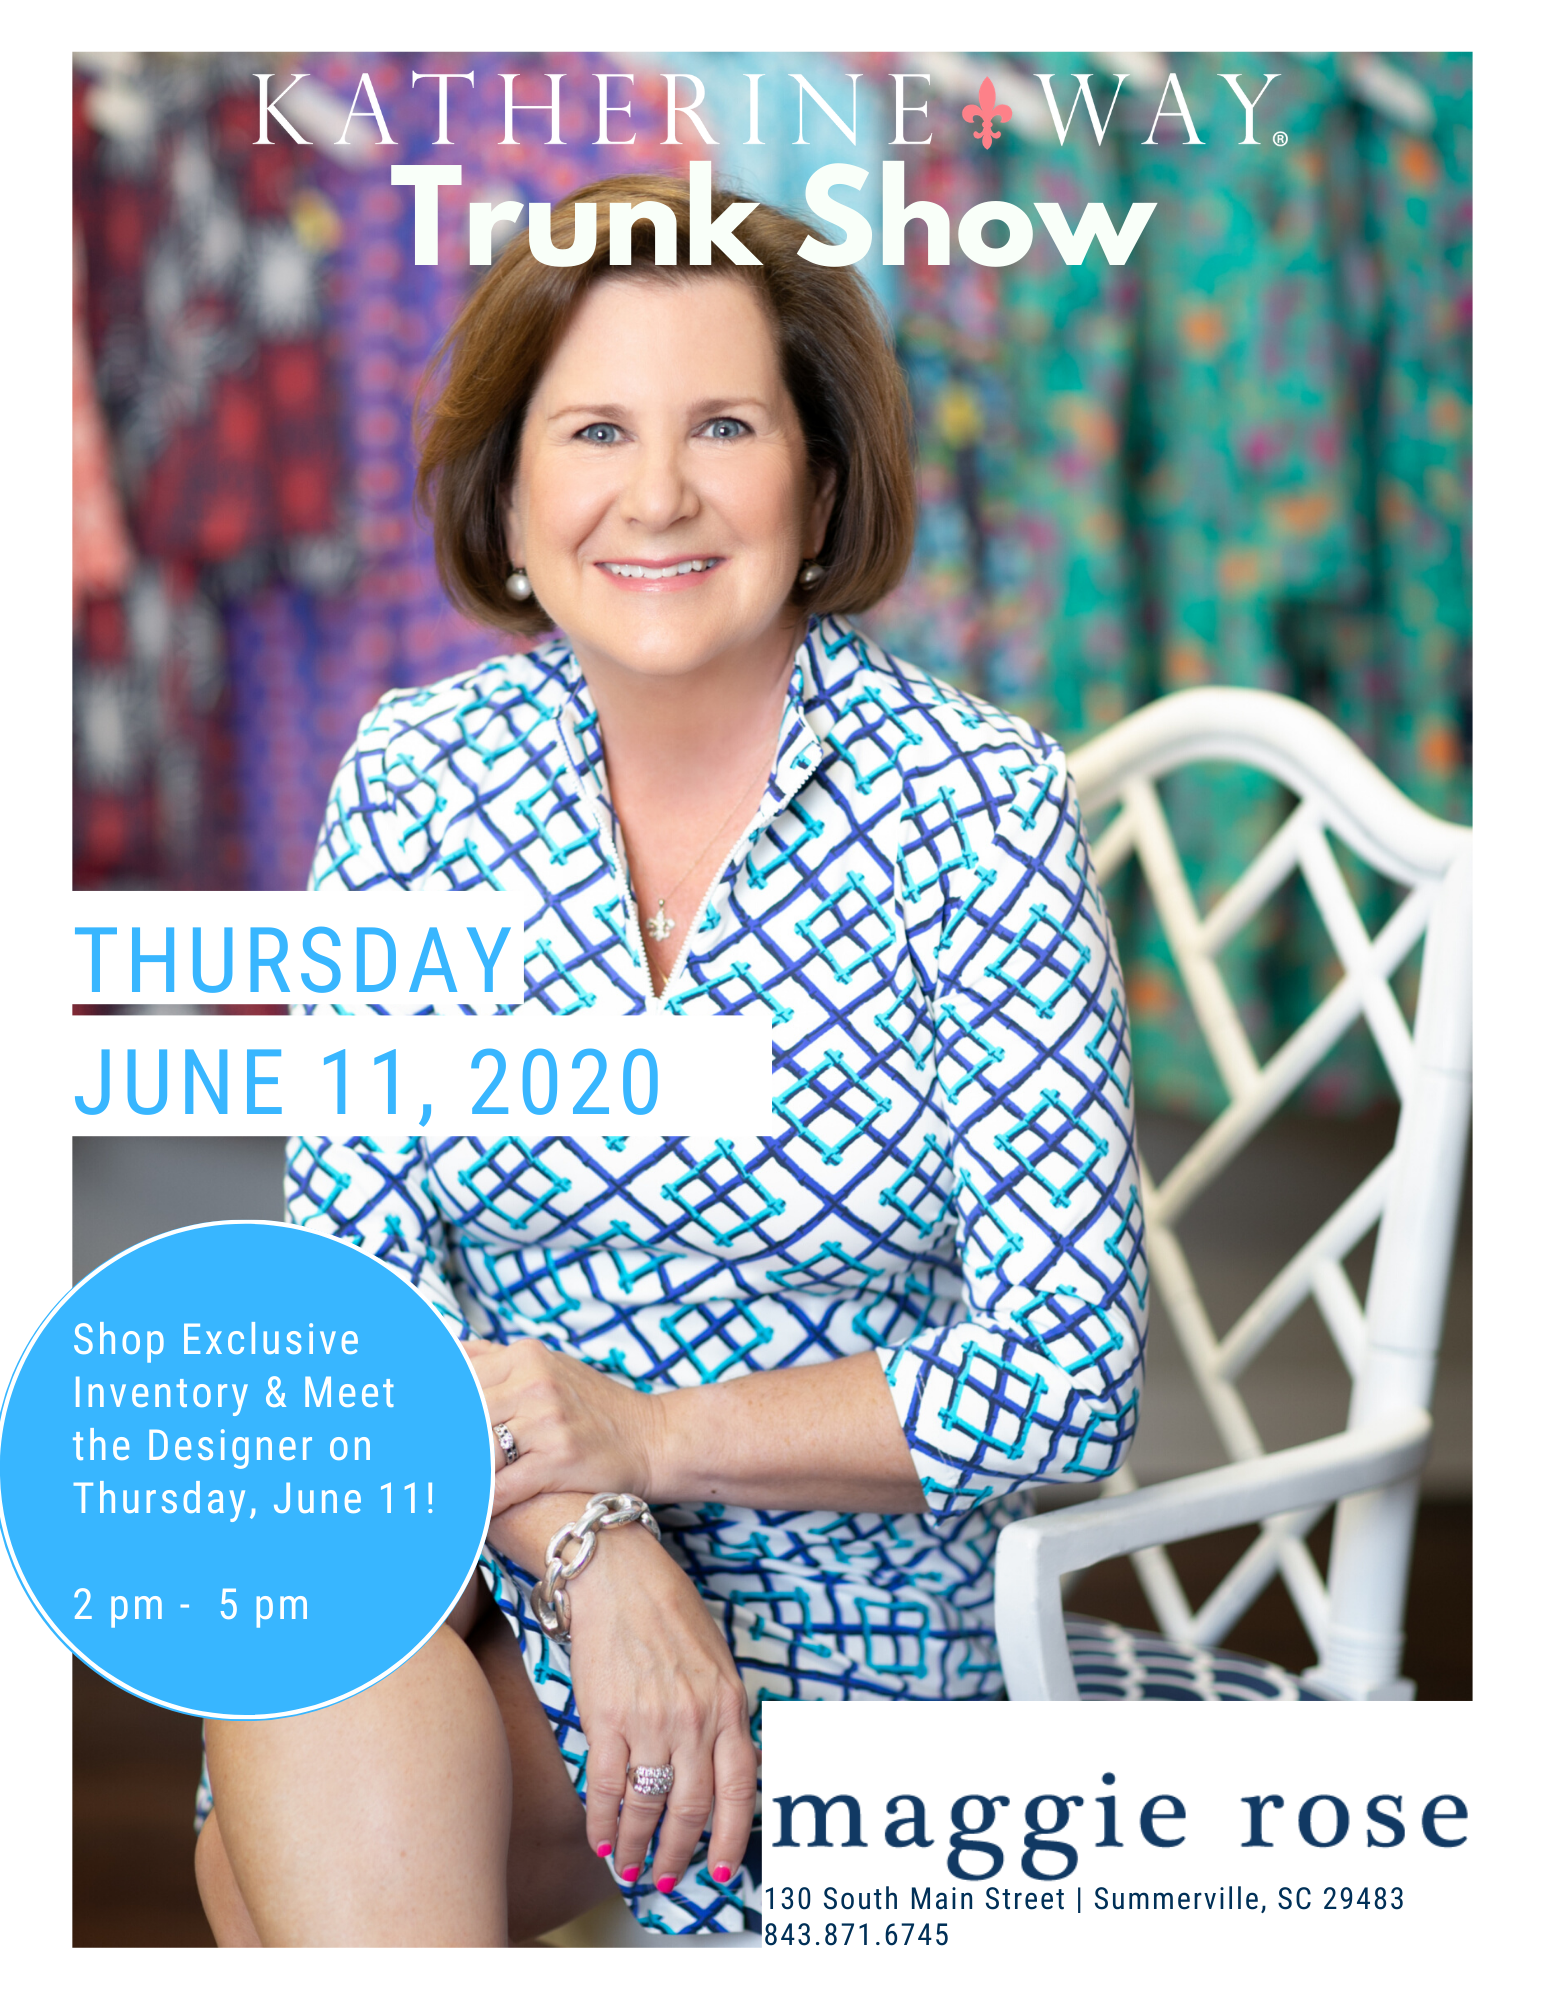 Maggie Rose Trunk Show